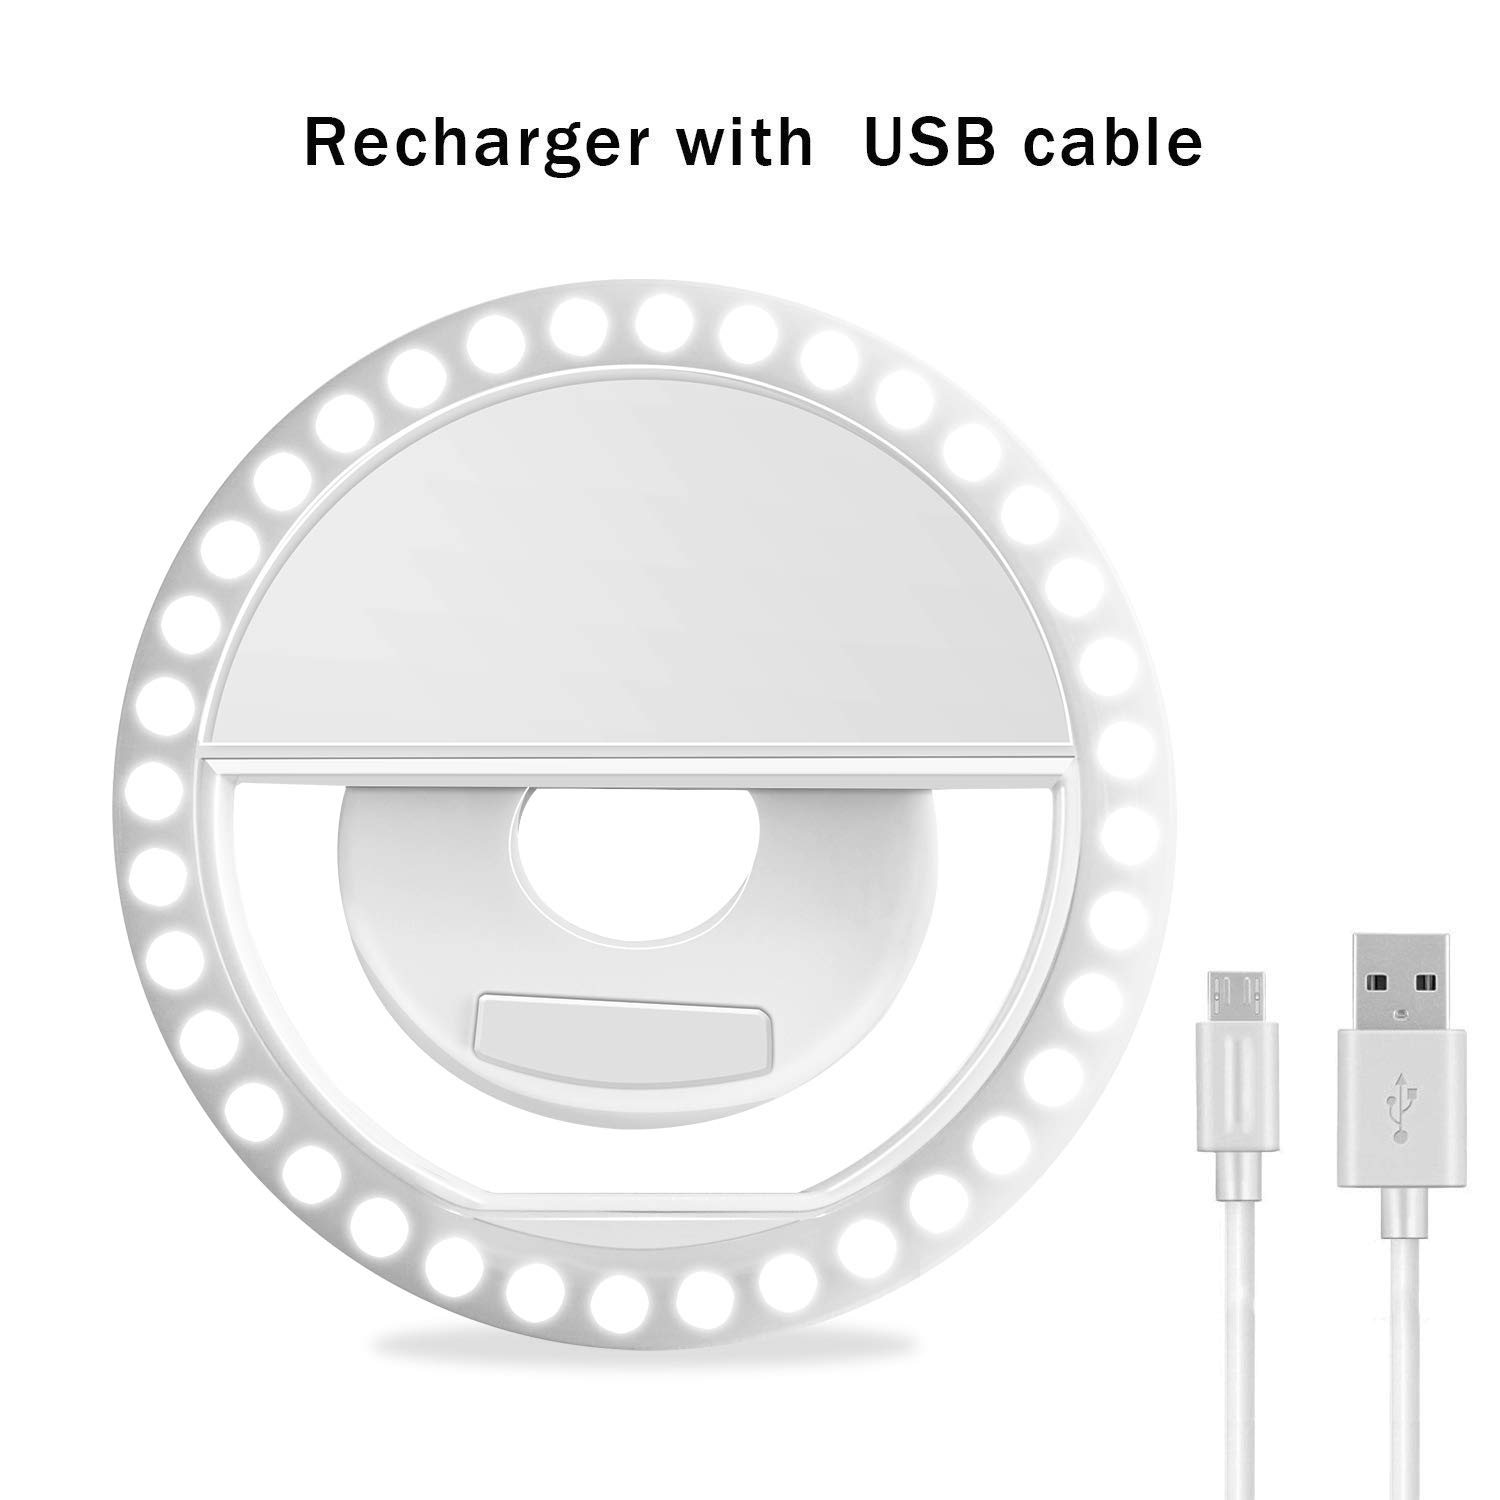 Selfie Ring Light, XINBAOHONG Rechargeable Portable Clip-on Selfie Fill Light with 36 LED for Smart Phone Photography, Camera Video, Girl Makes up (White, 36LED) by XINBAOHONG (Image #2)